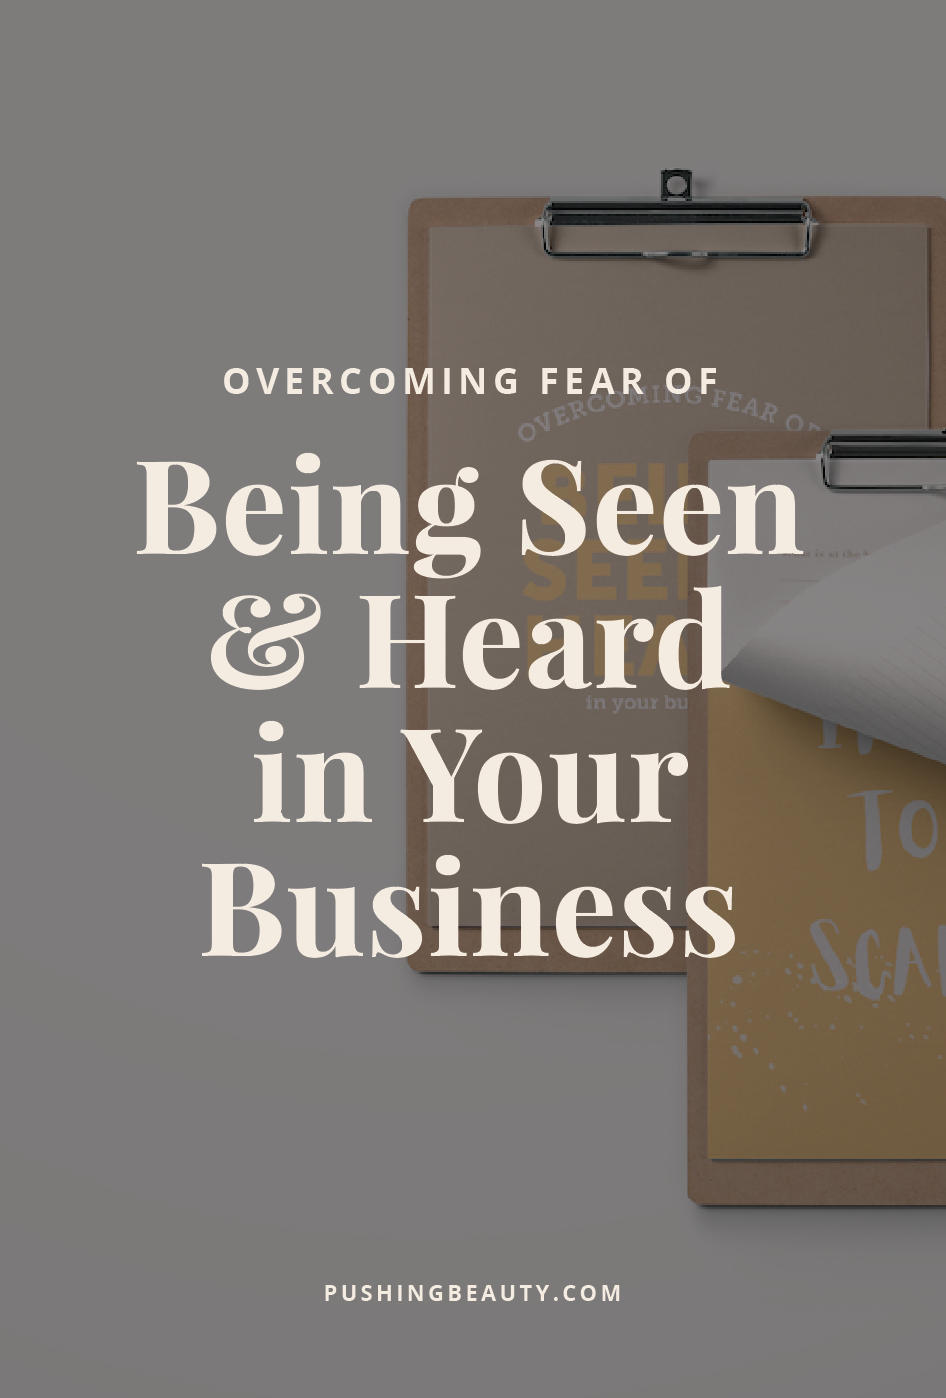 overcoming-fear-of-being-seen-and-heard-business-06.png